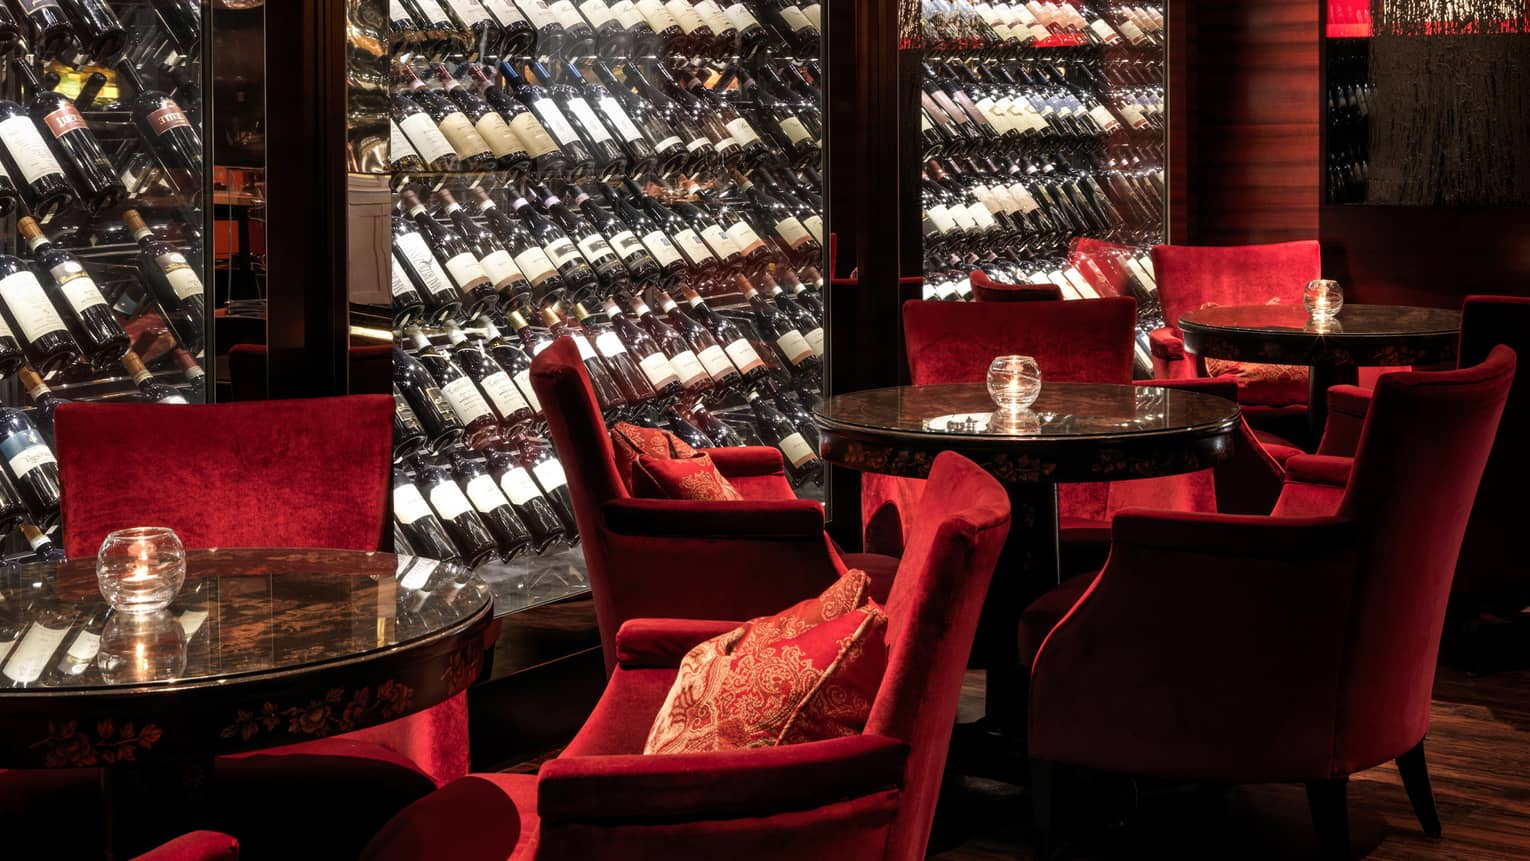 Close-up of Amaranto Bar red velvet lounge chairs by glass cellar, bottles